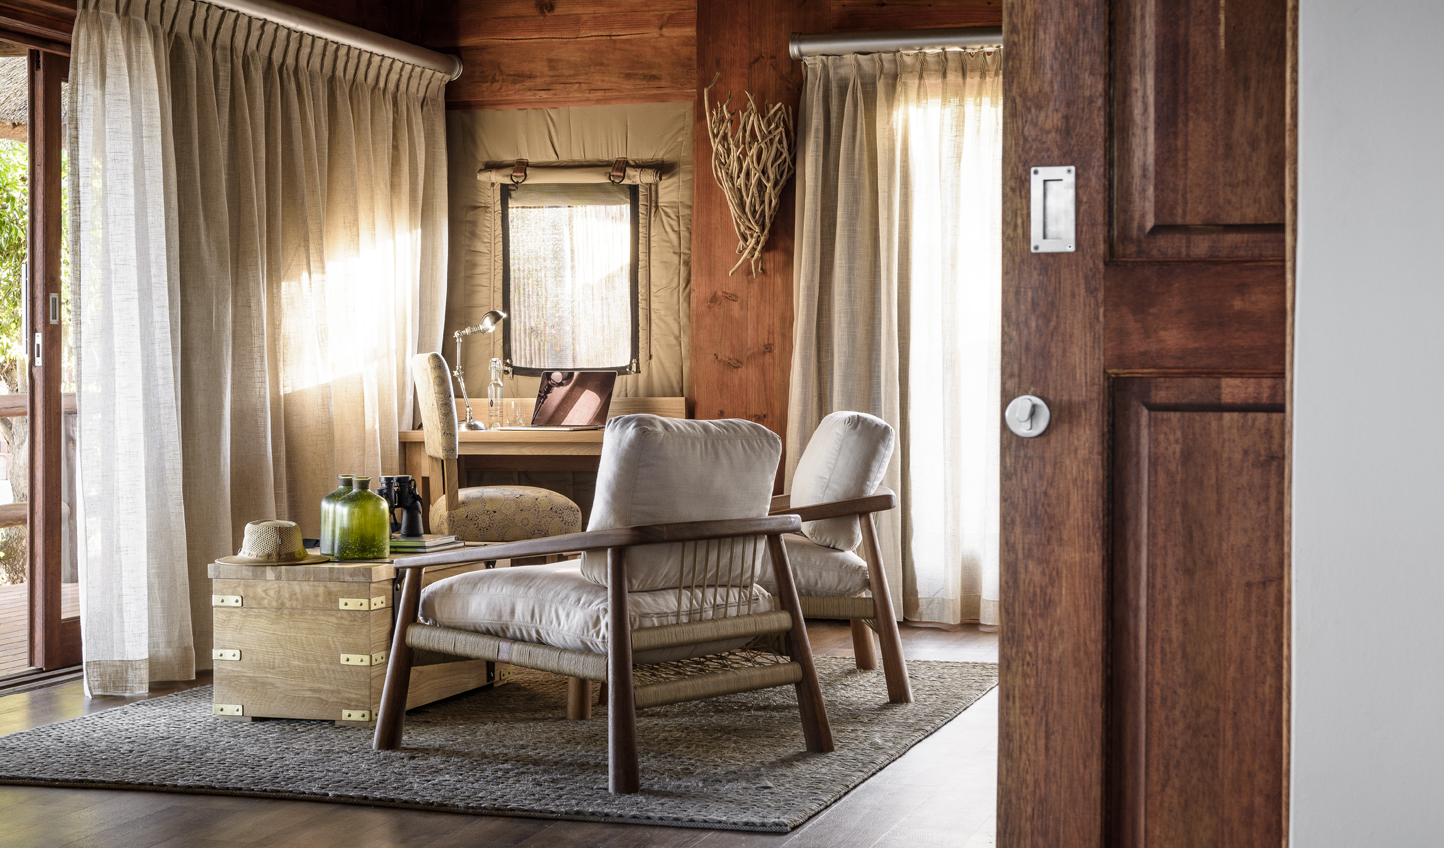 Authentic Botswana luxury